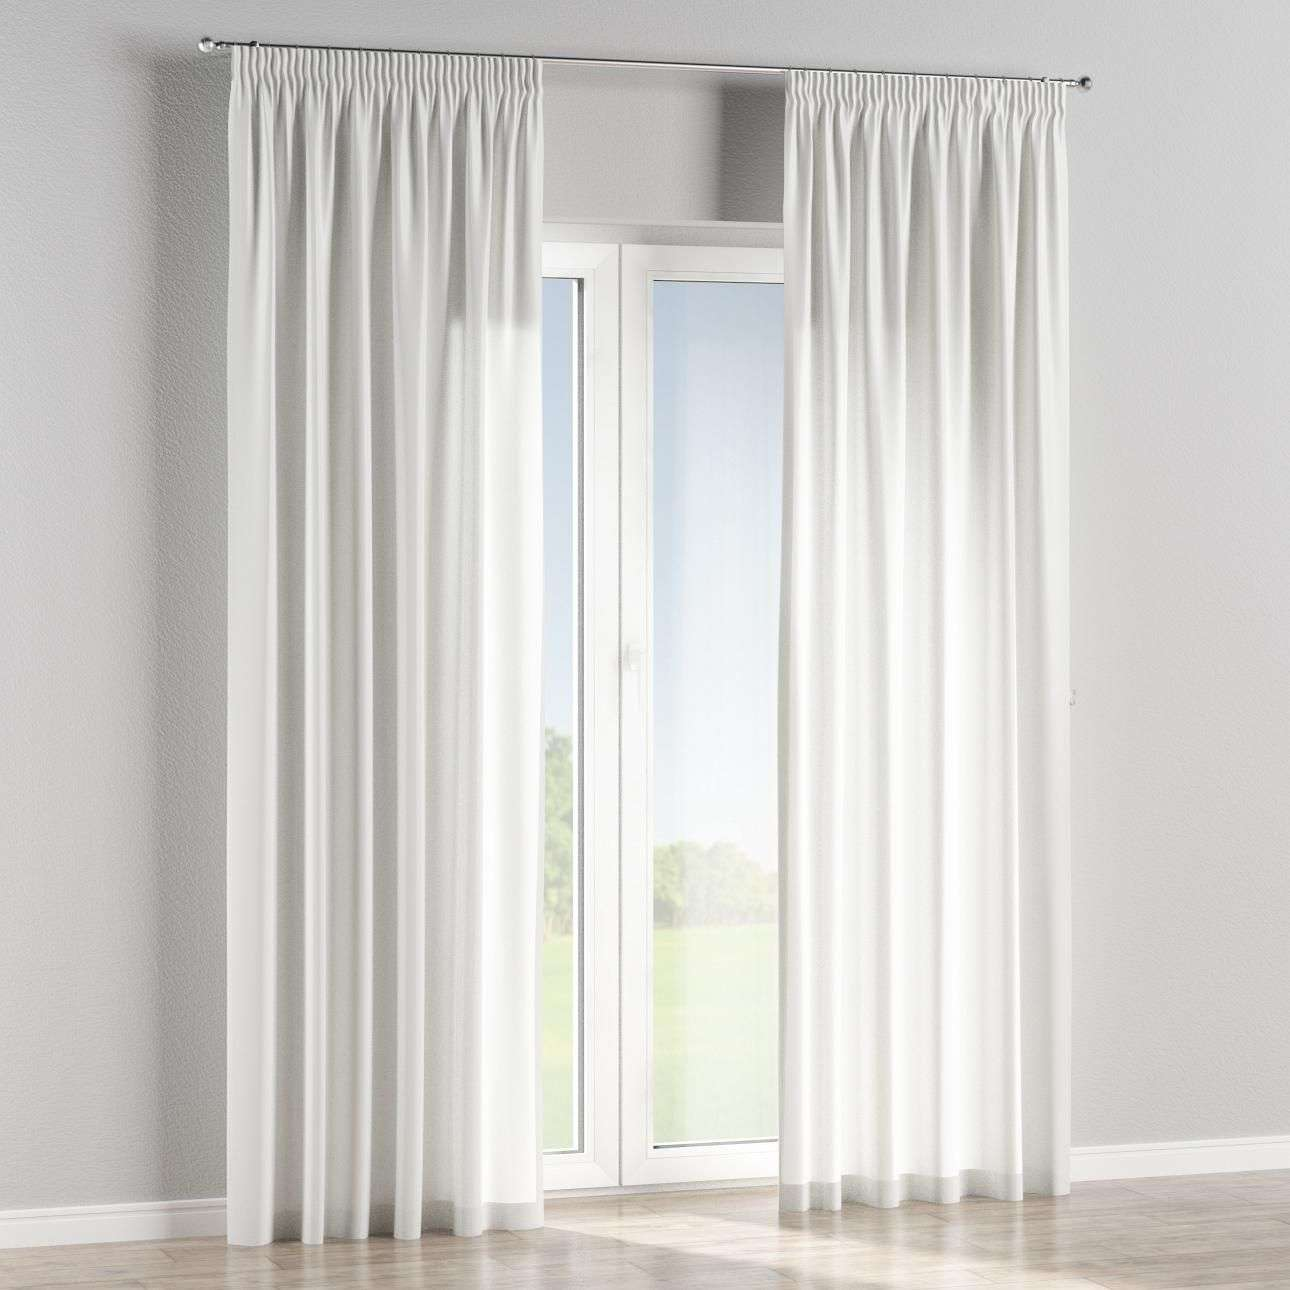 Pencil pleat curtains in collection SALE, fabric: 119-29